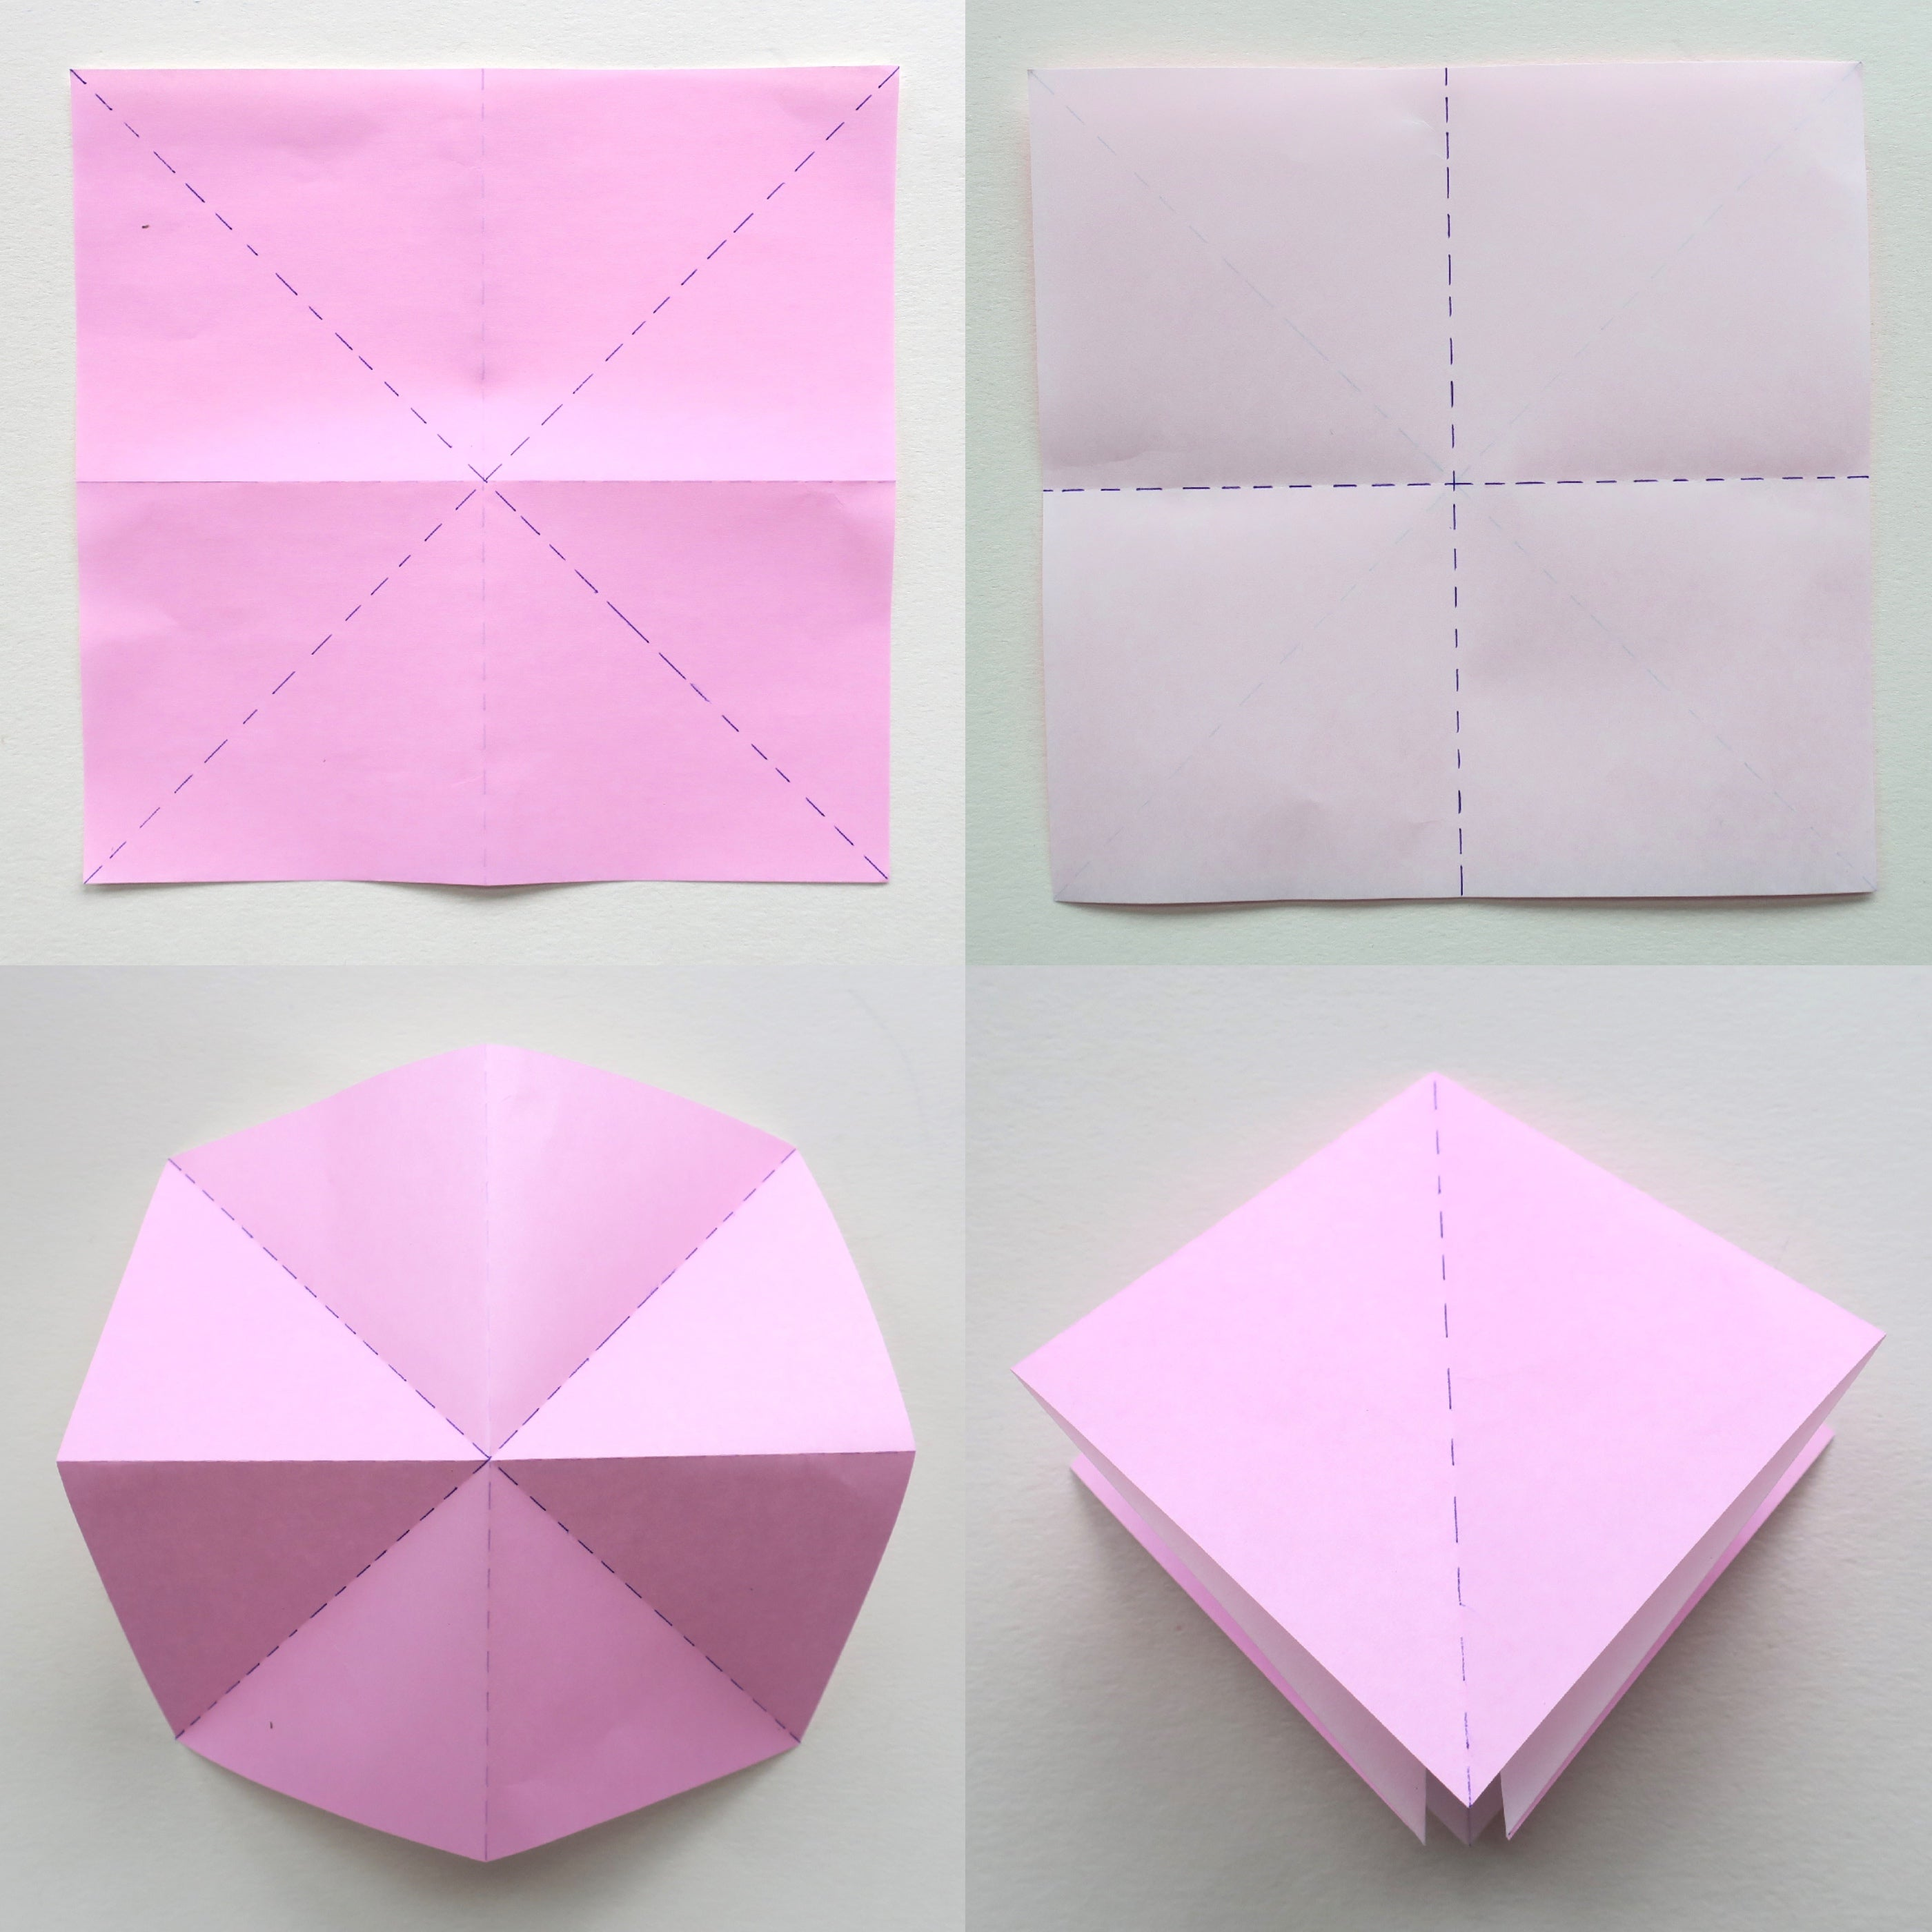 Origami Folding Instructions - How to make an Origami Square Base | 2800x2800